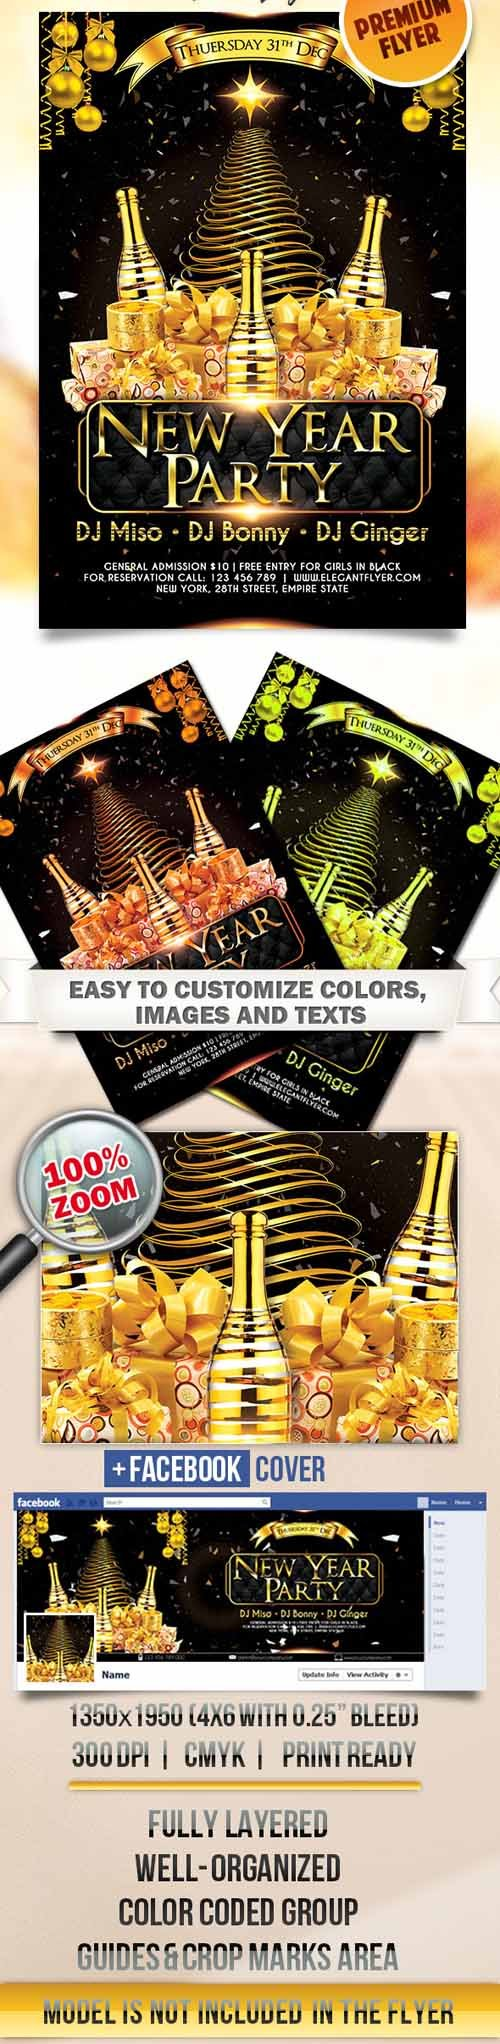 Flyer PSD Template - New Year Party + Facebook Cover